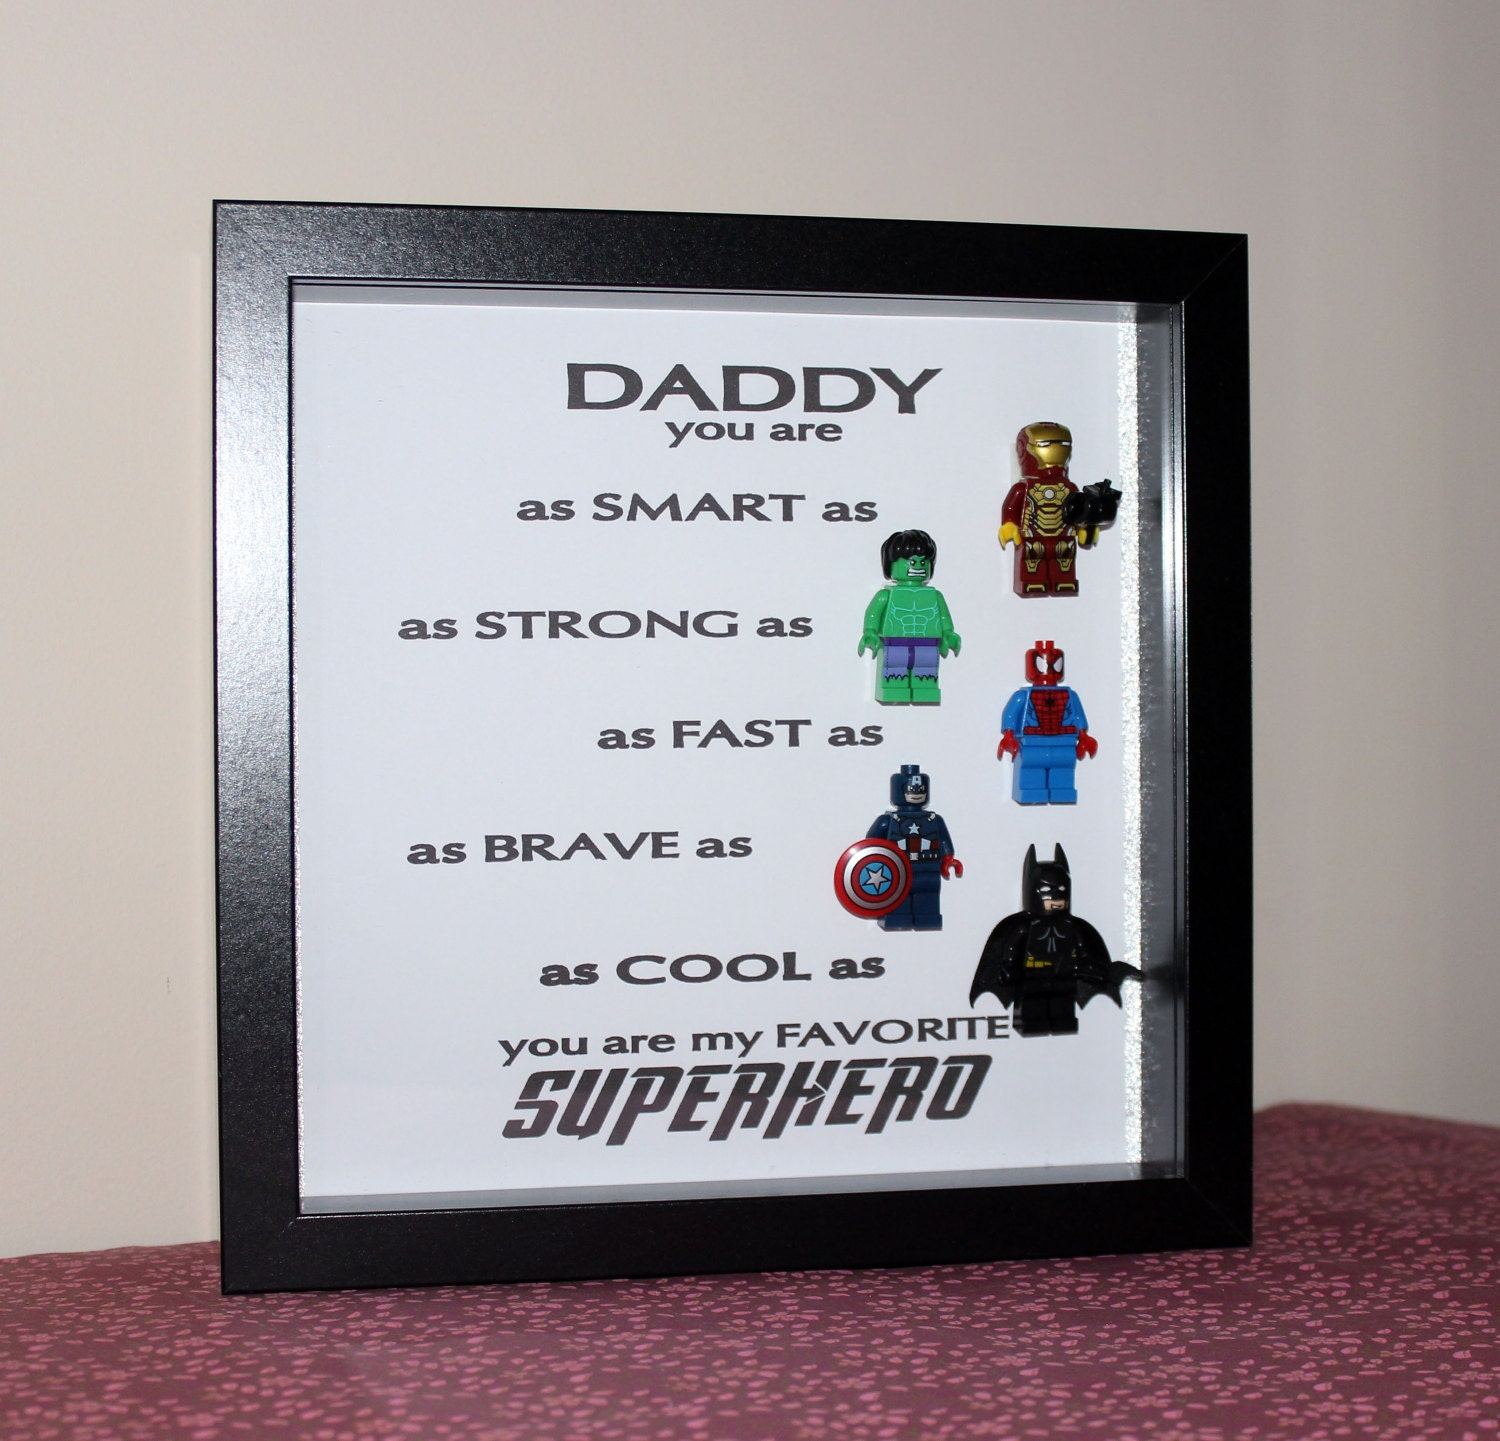 Daddy you are my Superhero Lego Minifigure Wall Boxed frame